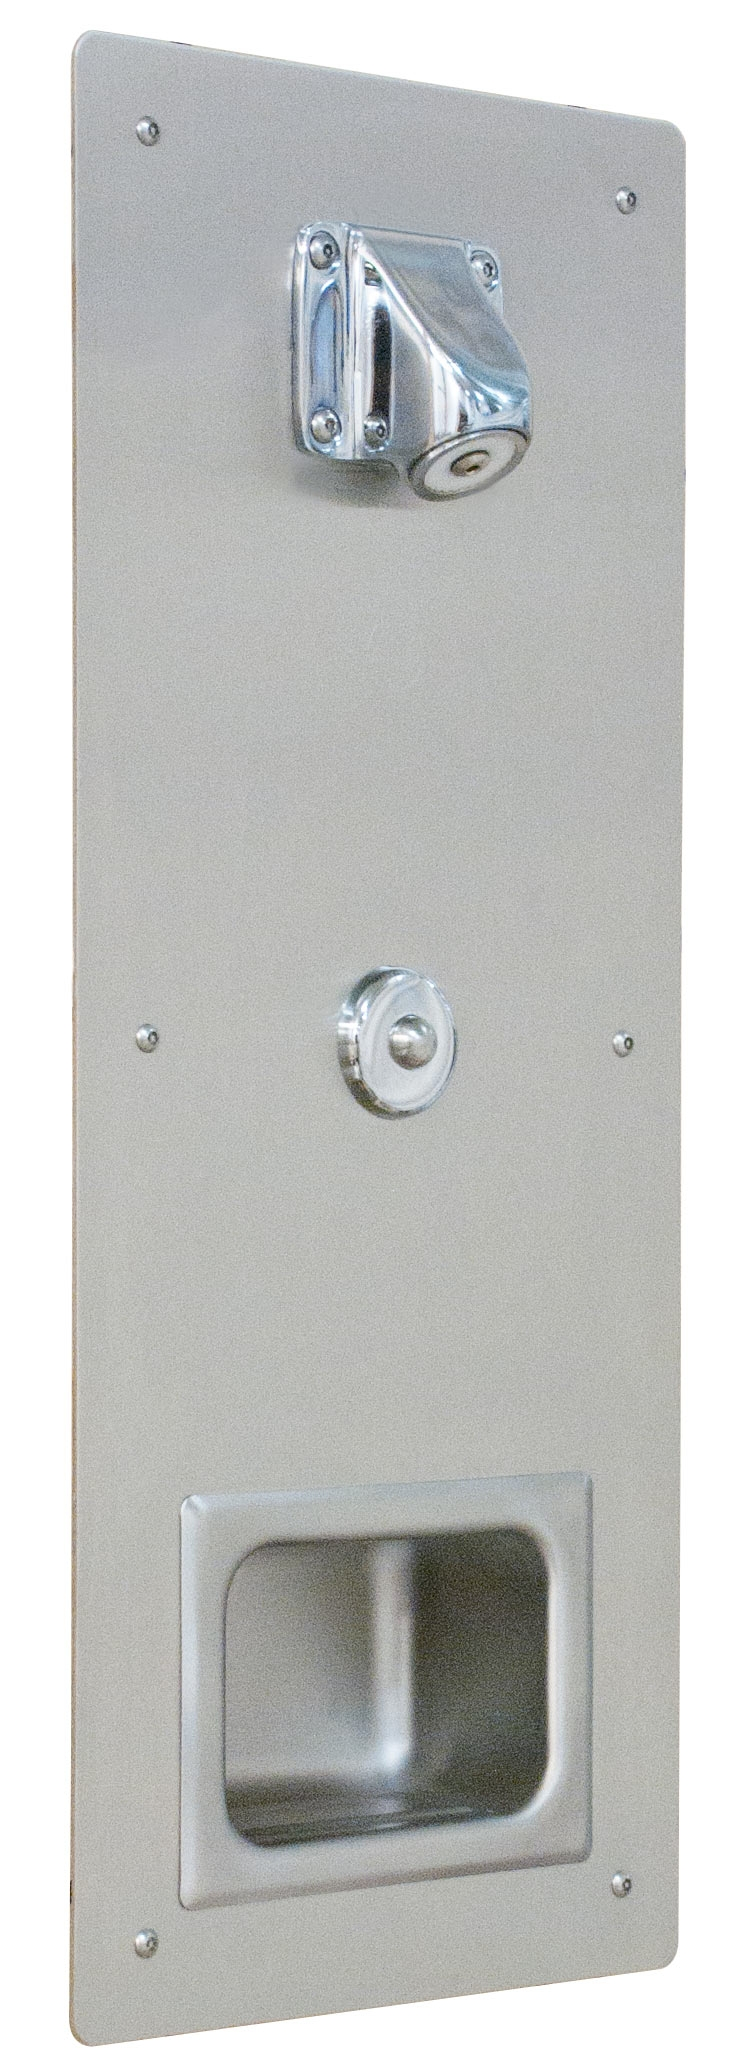 Ideas, 41 bradley shower valves barrier free wall shower individual inside sizing 756 x 2062  .